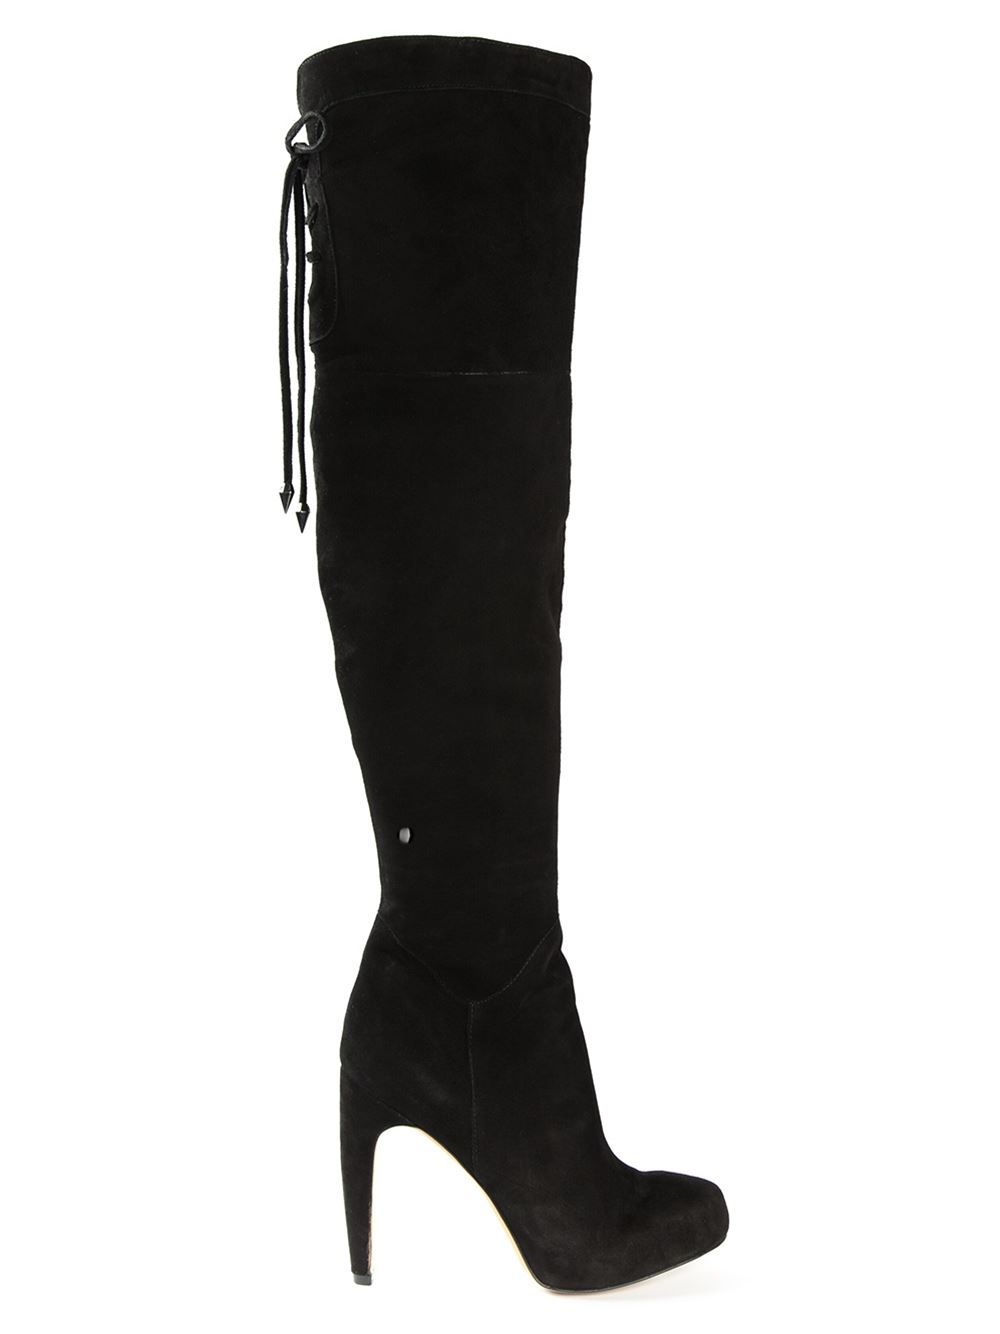 7573274bc Gallery. Previously sold at  Farfetch · Women s Thigh High Boots Women s Sam  Edelman Kayla ...